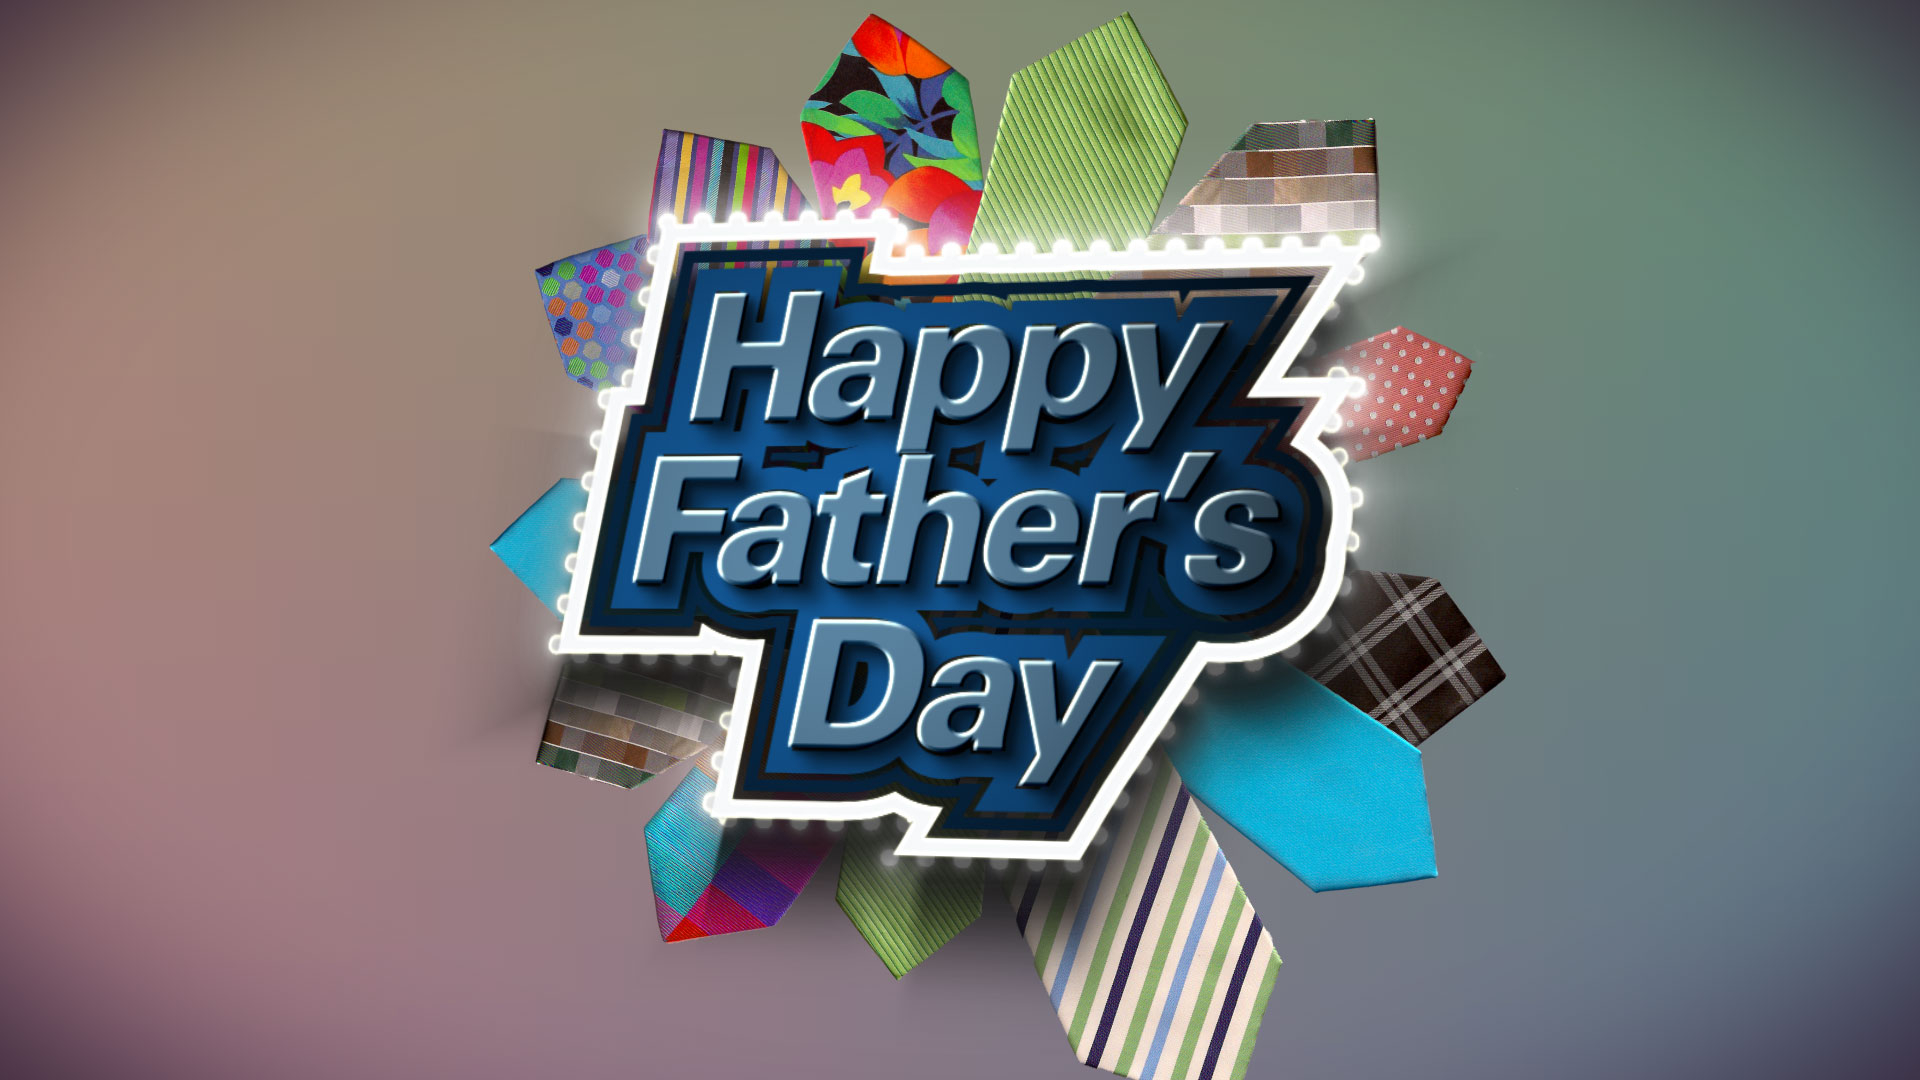 Fathers Day HD Wallpaper Background Image 1920x1080 ID 1920x1080